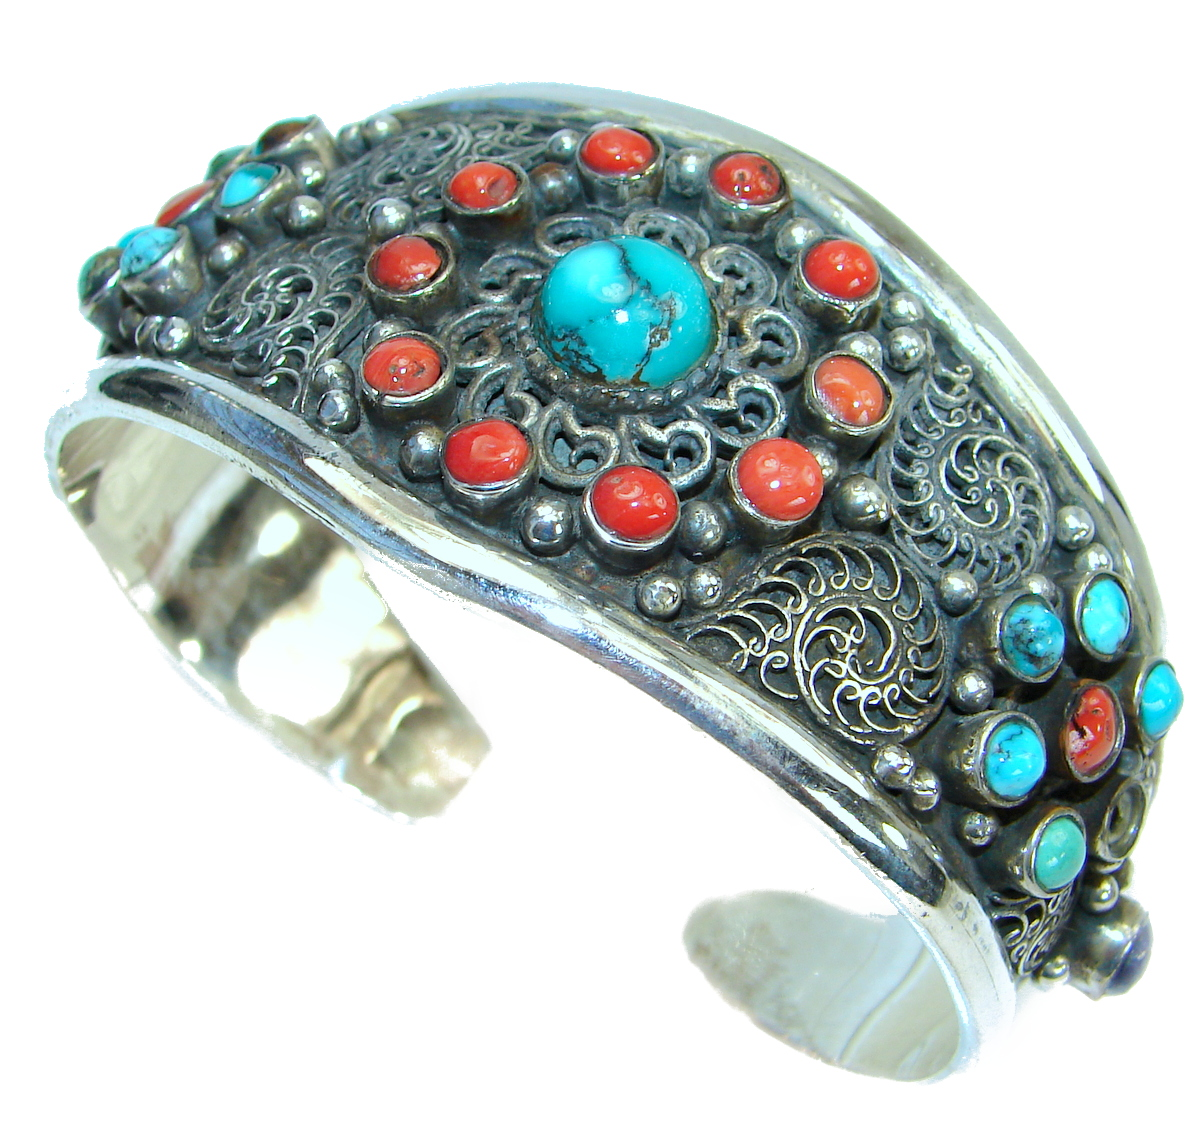 Jumbo Boho Chic  Genuine  Turquoise Coral .925 Sterling Silver handmade Bracelet / Cuff